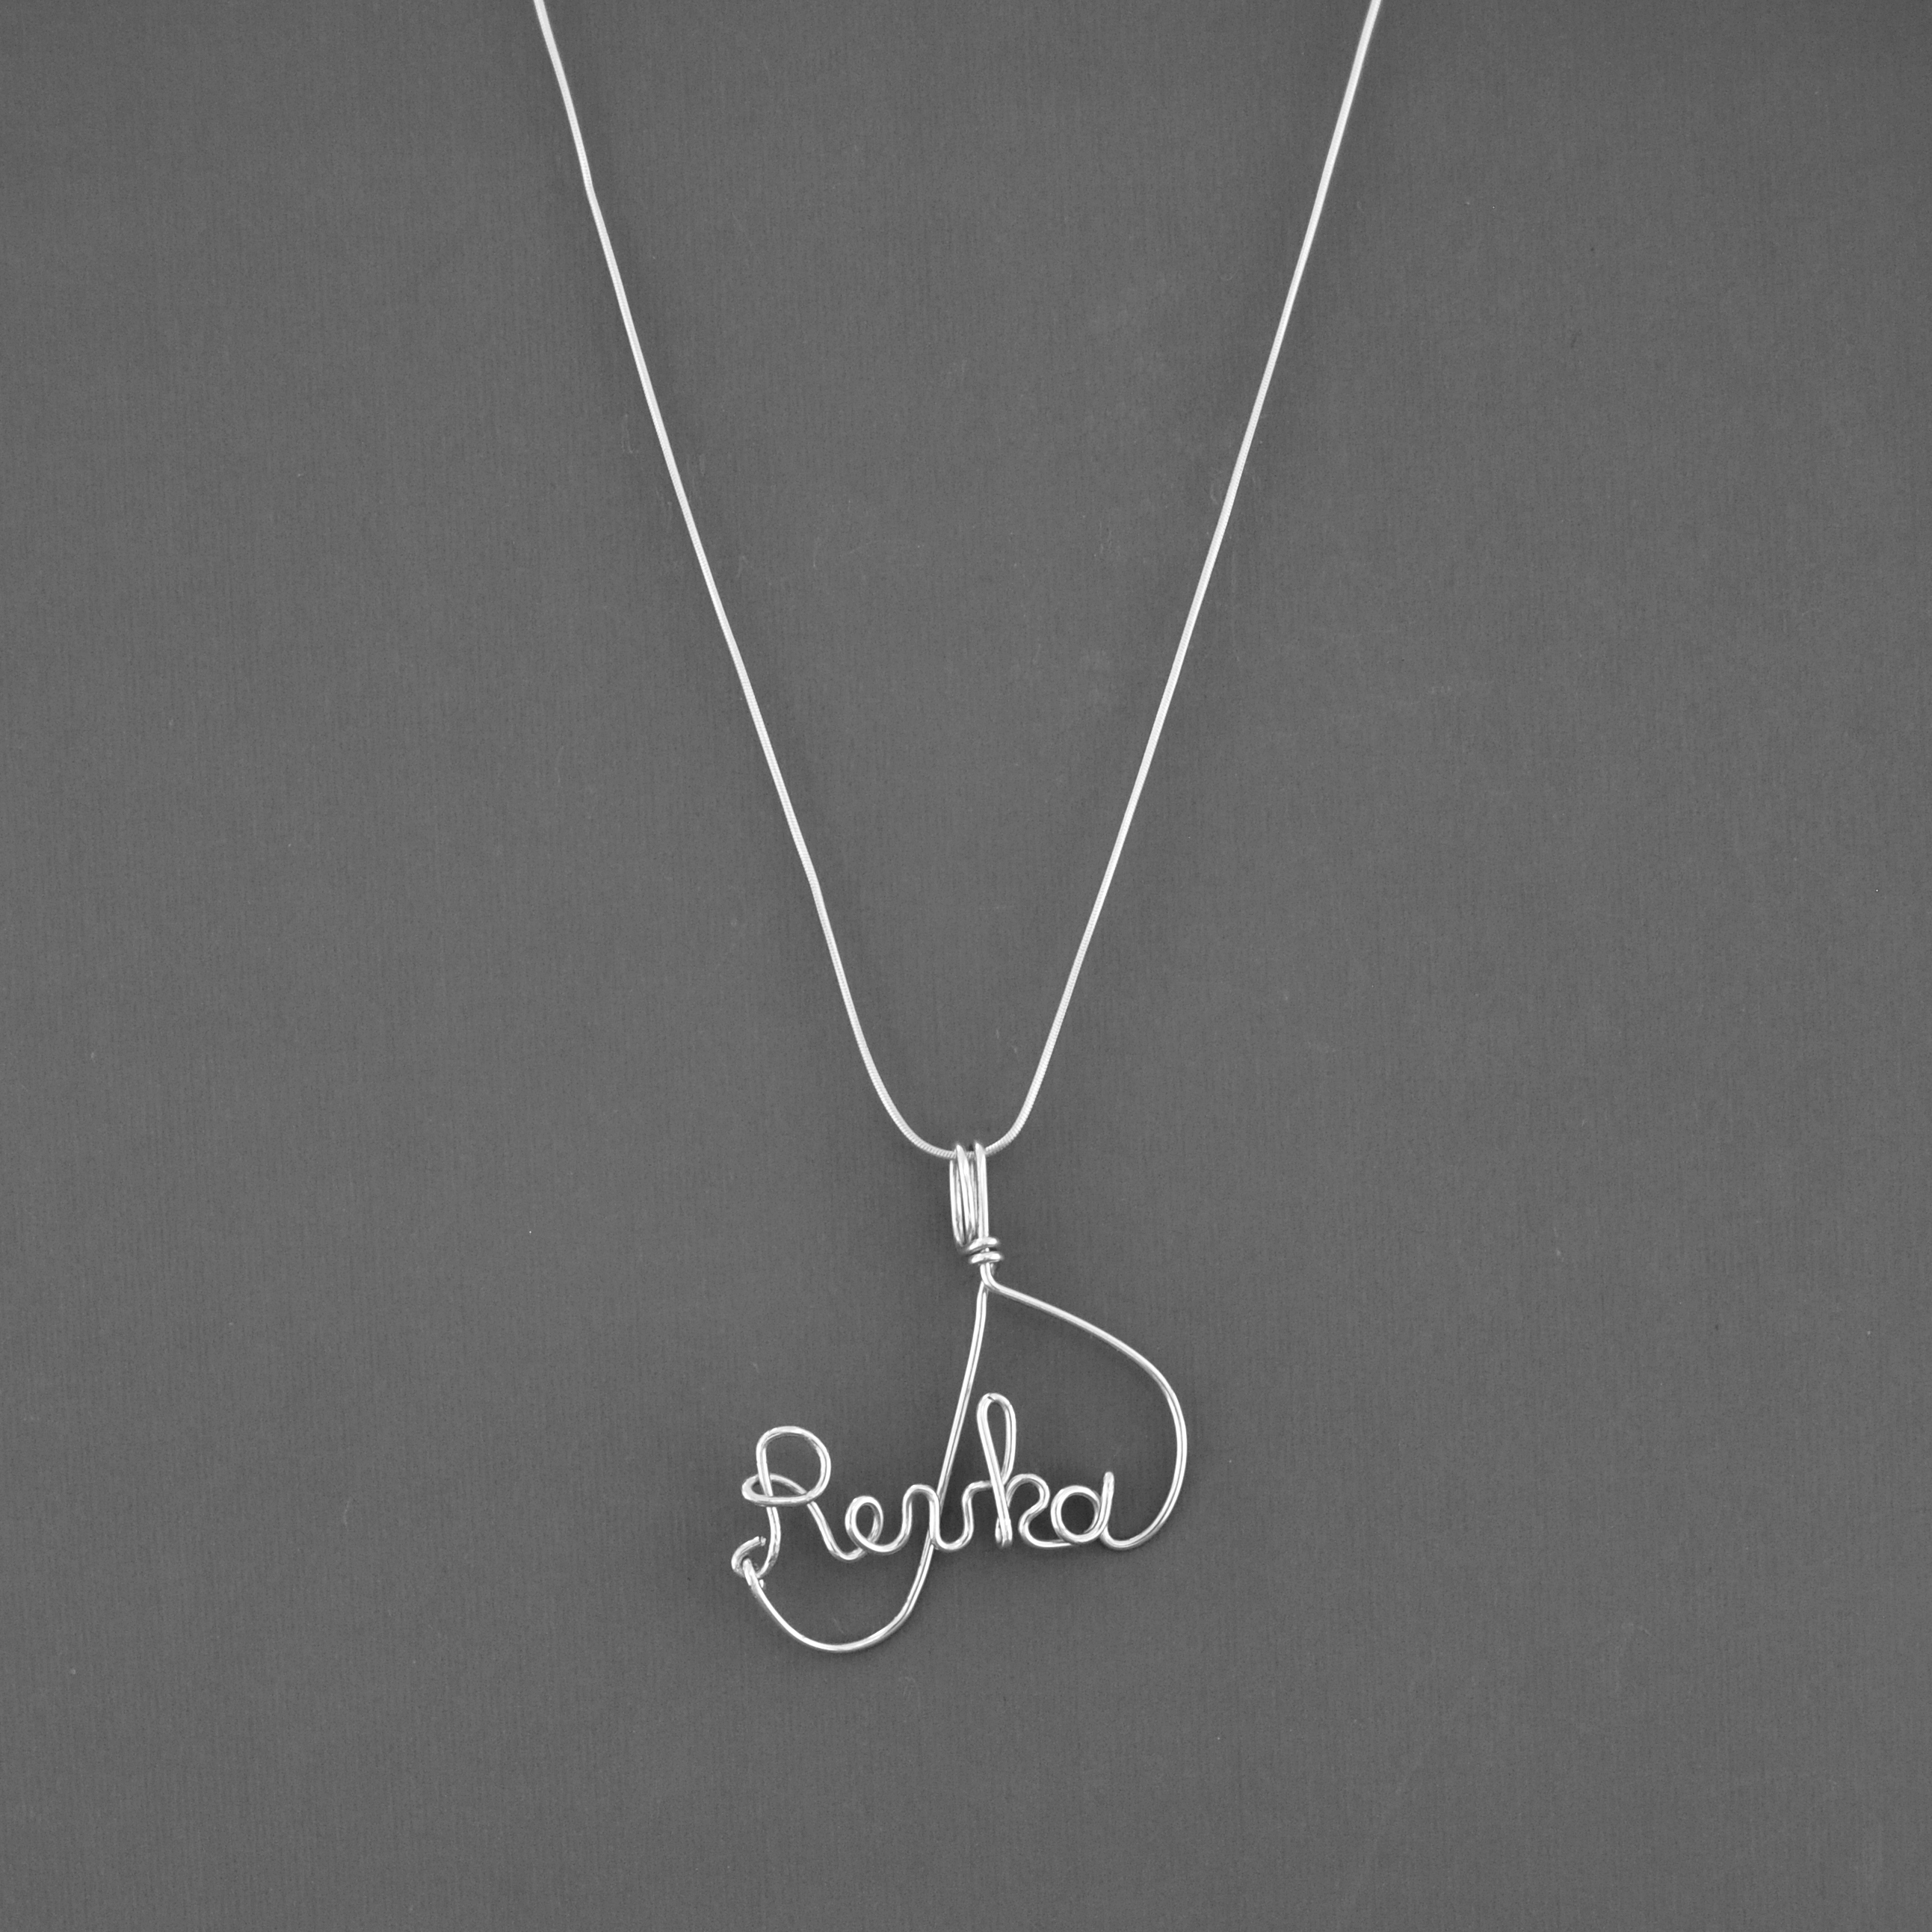 products bohomoon english name image jewellery custom necklace old